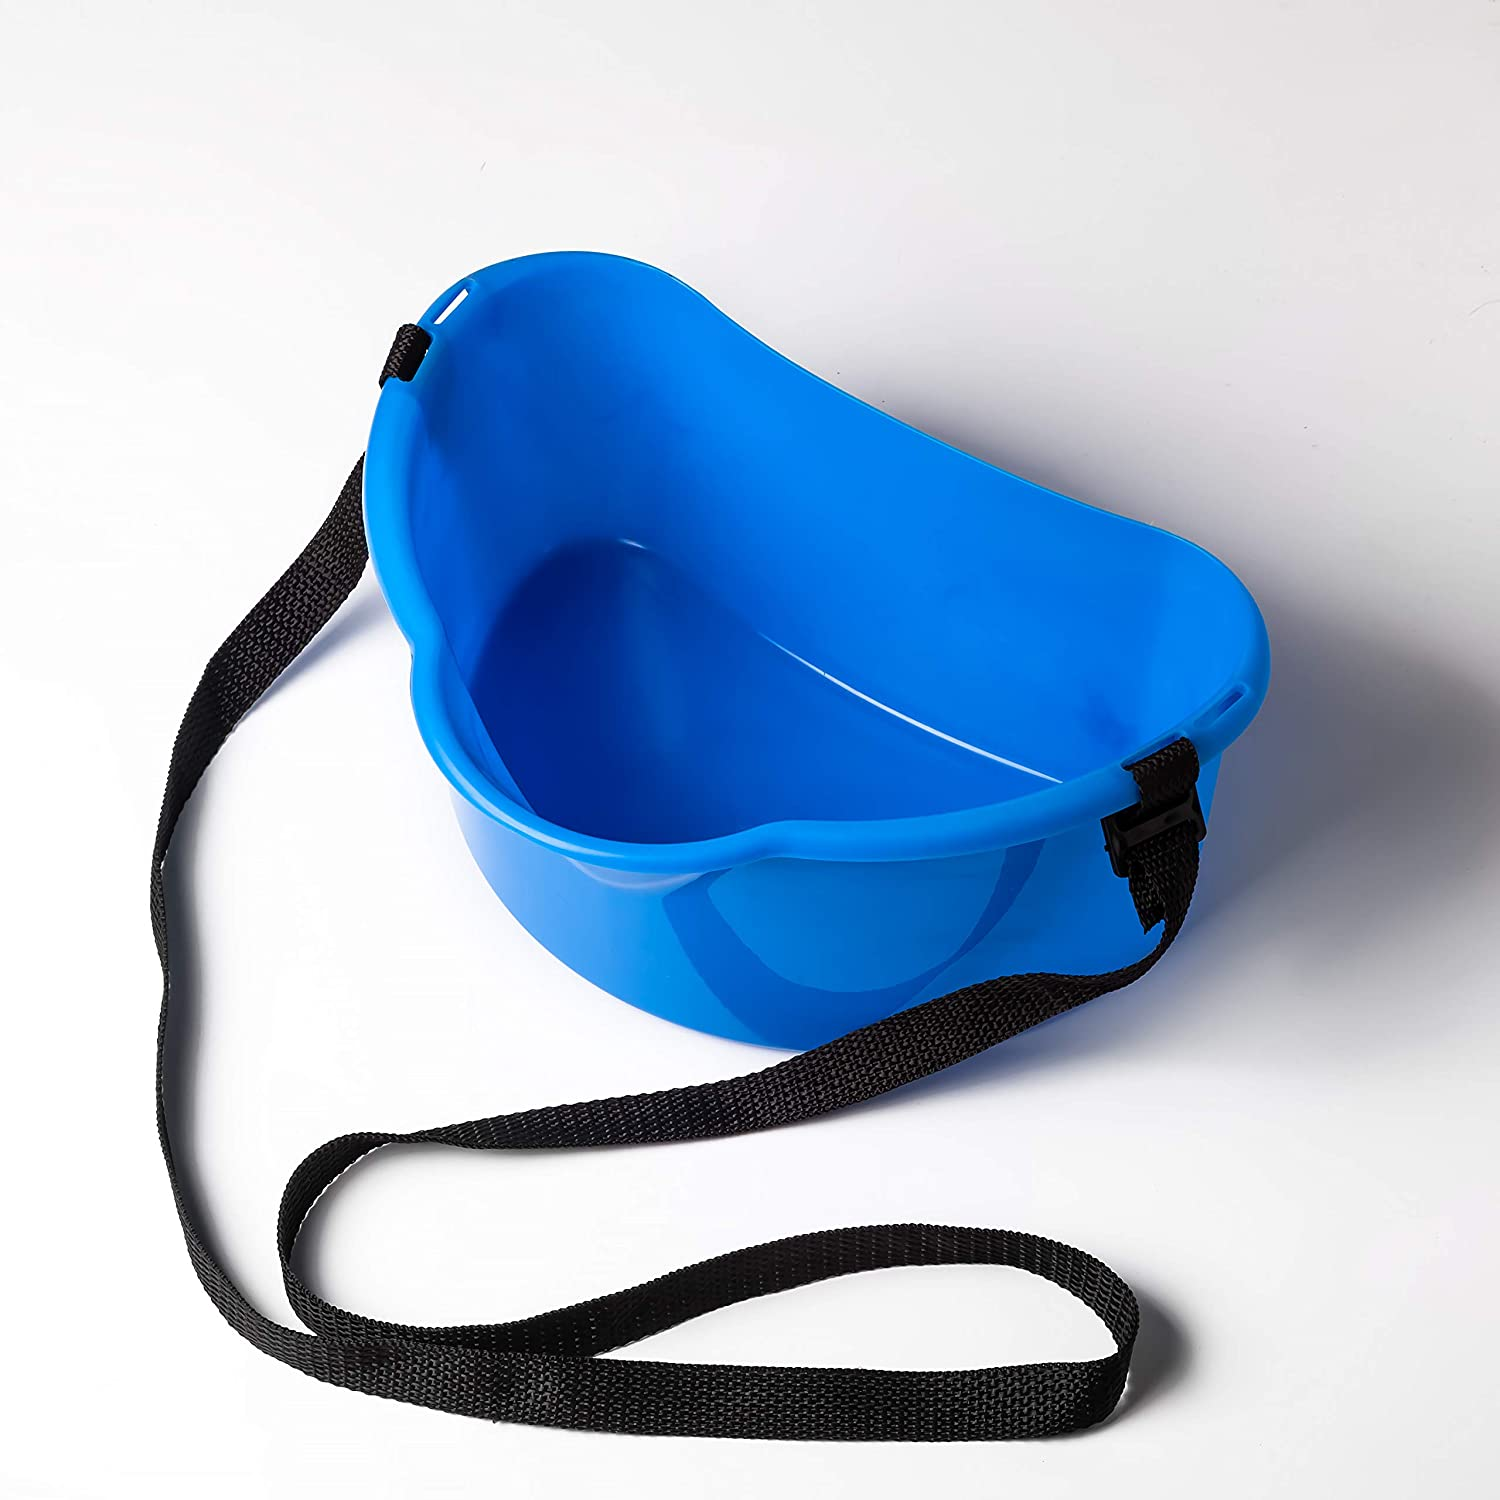 Fruits Berry Picker Harvesting Basket with Strap 3L/0.8 gal Harvest Bucket for Fruits Berries Vegetables Garden Tools Container Belt Support Farm | 1 pcs Blue